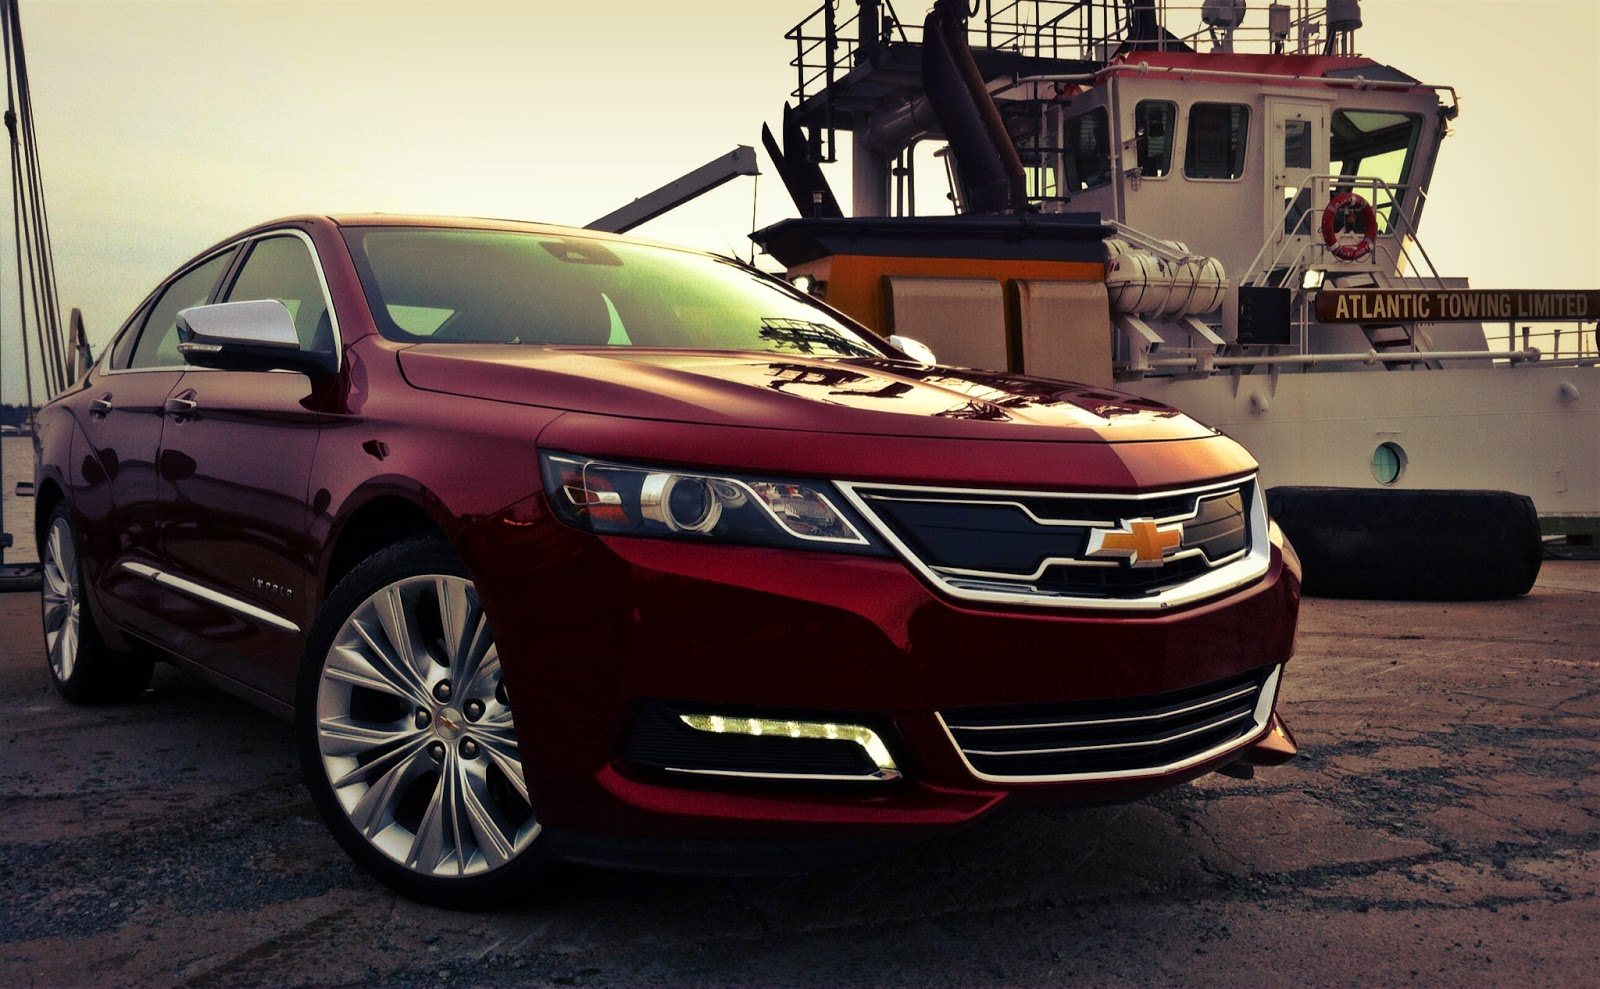 General motors as a consistent up to now their new models in an ideal way and increase the redesign so at first sight chev car lovers and people who